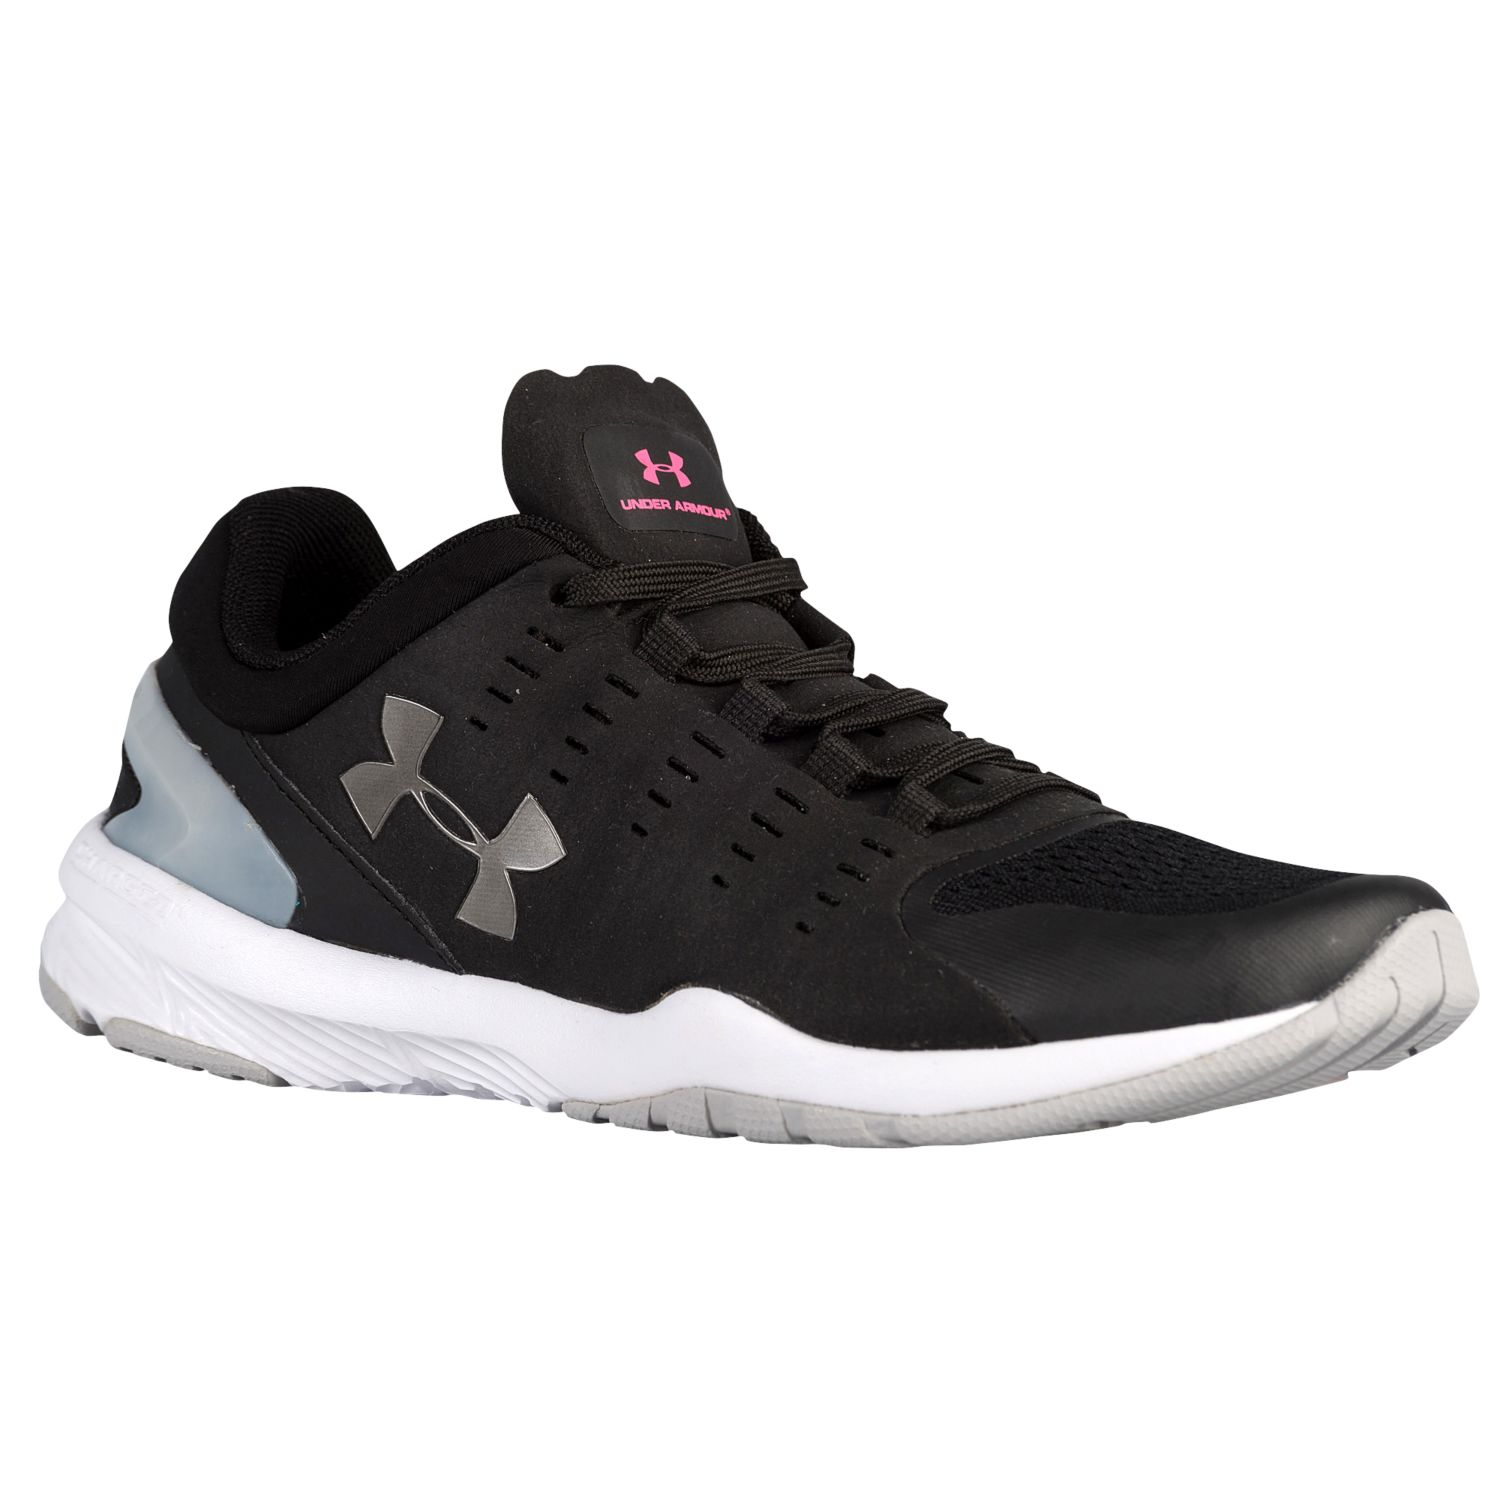 black under armour shoes women's